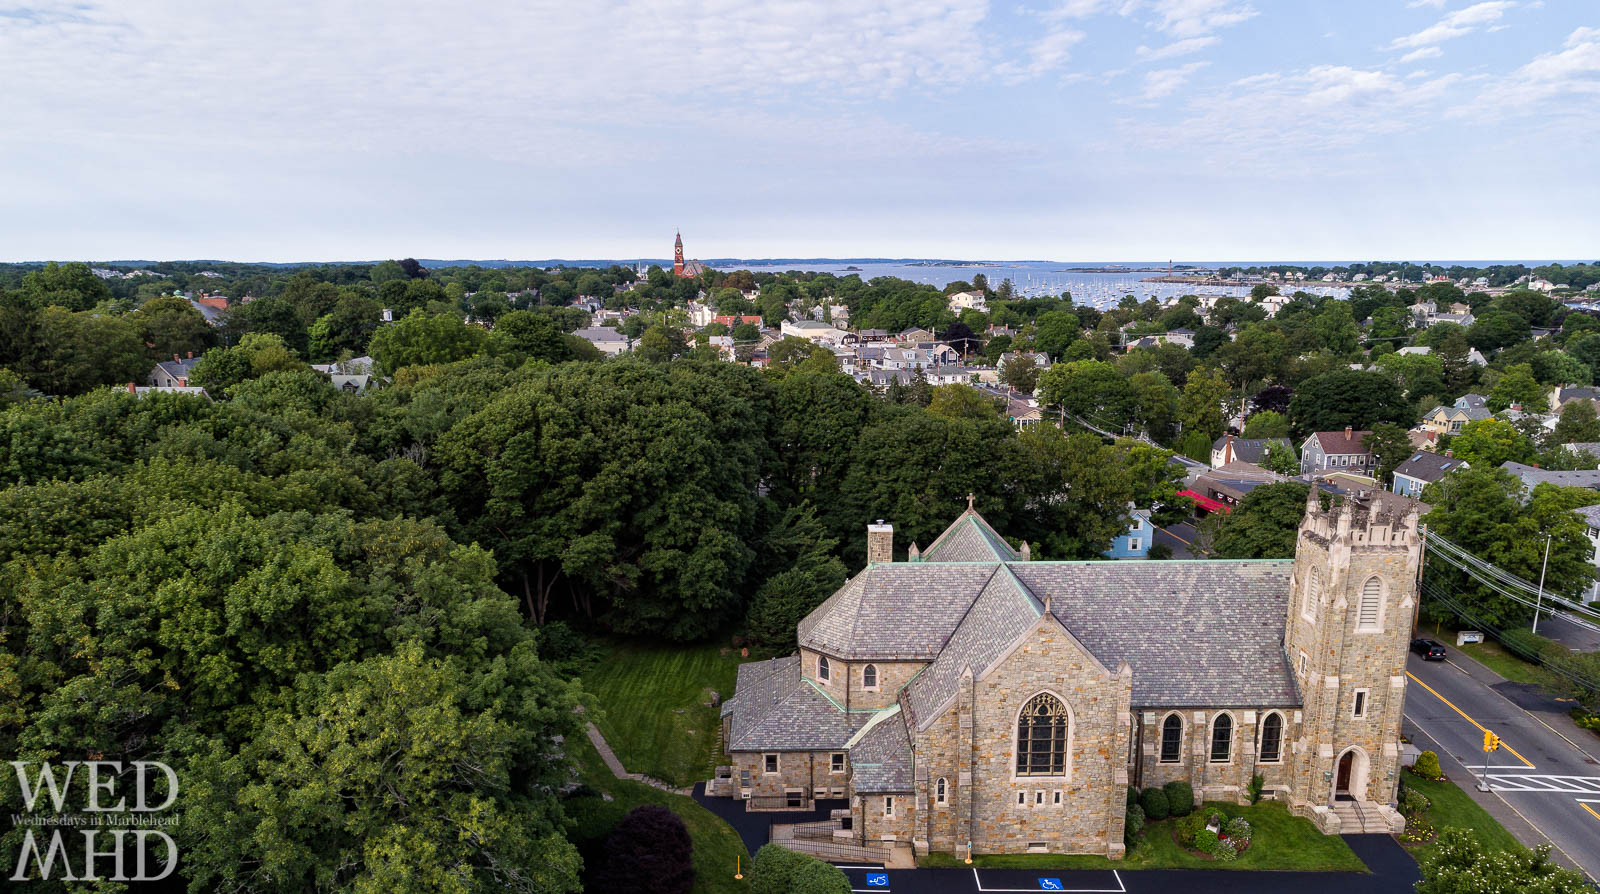 Star of the Sea church in Marblehead is surrounded by trees and flanked by Abbot Hall in the distance as well as Marblehead Harbor